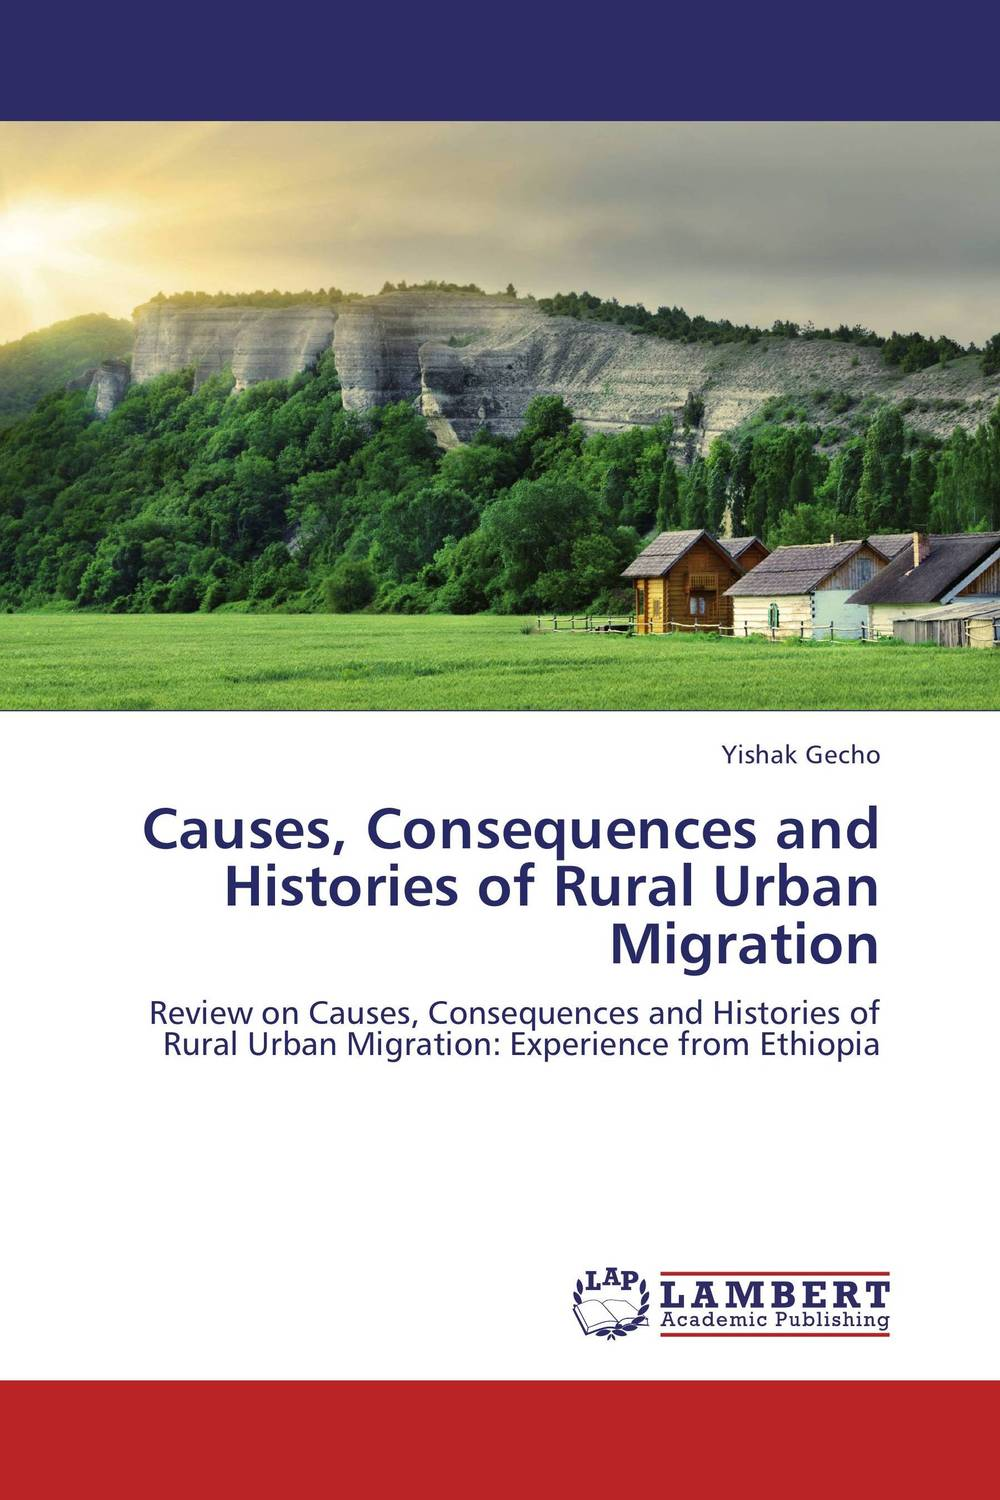 Causes, Consequences and Histories of Rural Urban Migration